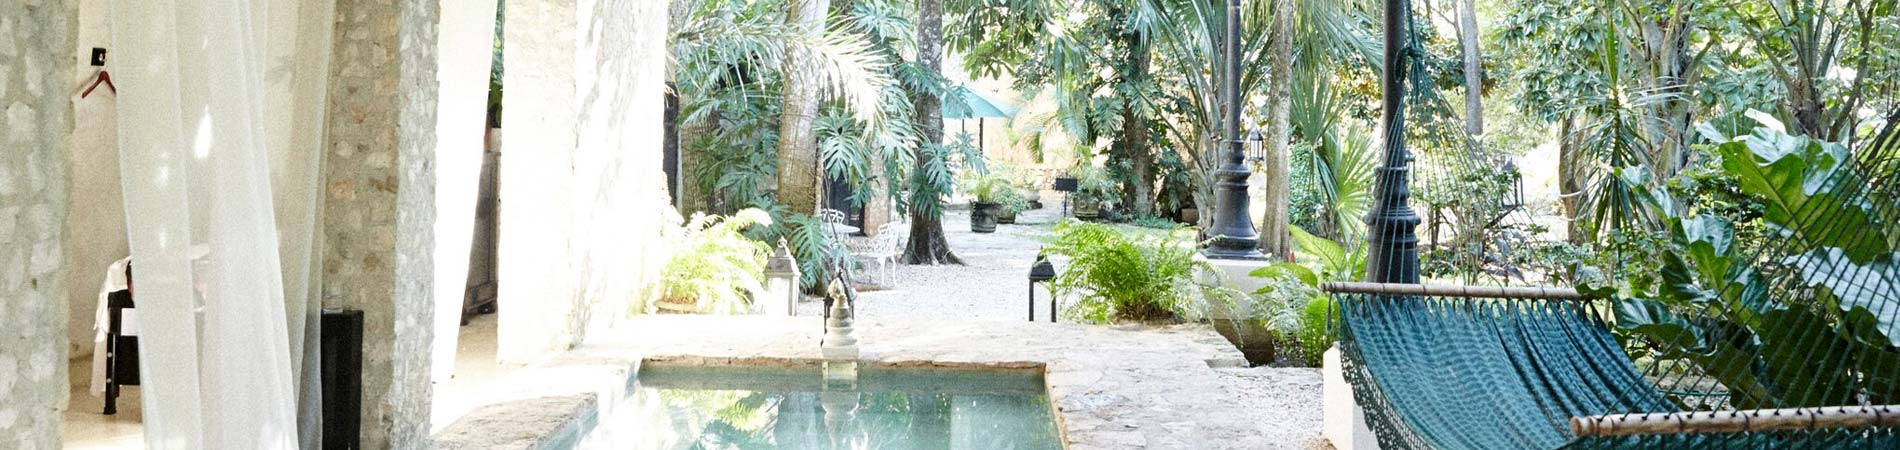 Home Luxury Hotels Yucatan Peninsula